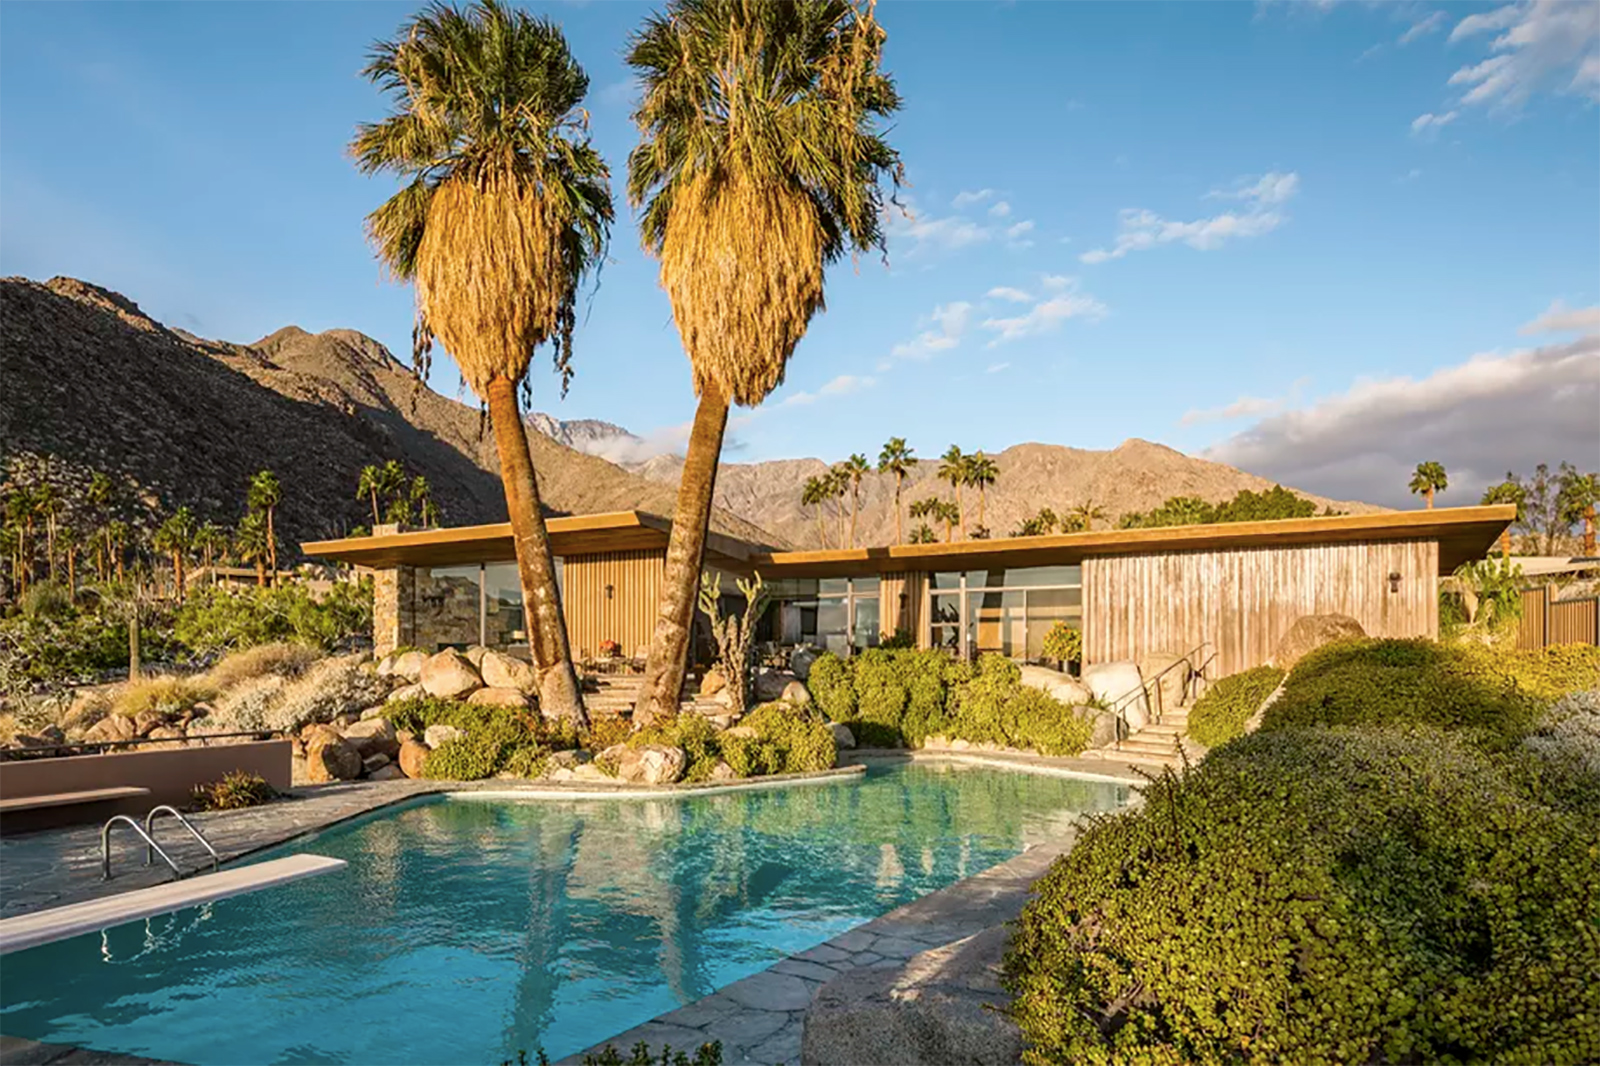 7 of the best midcentury homes for sale in the us for Property in palm springs